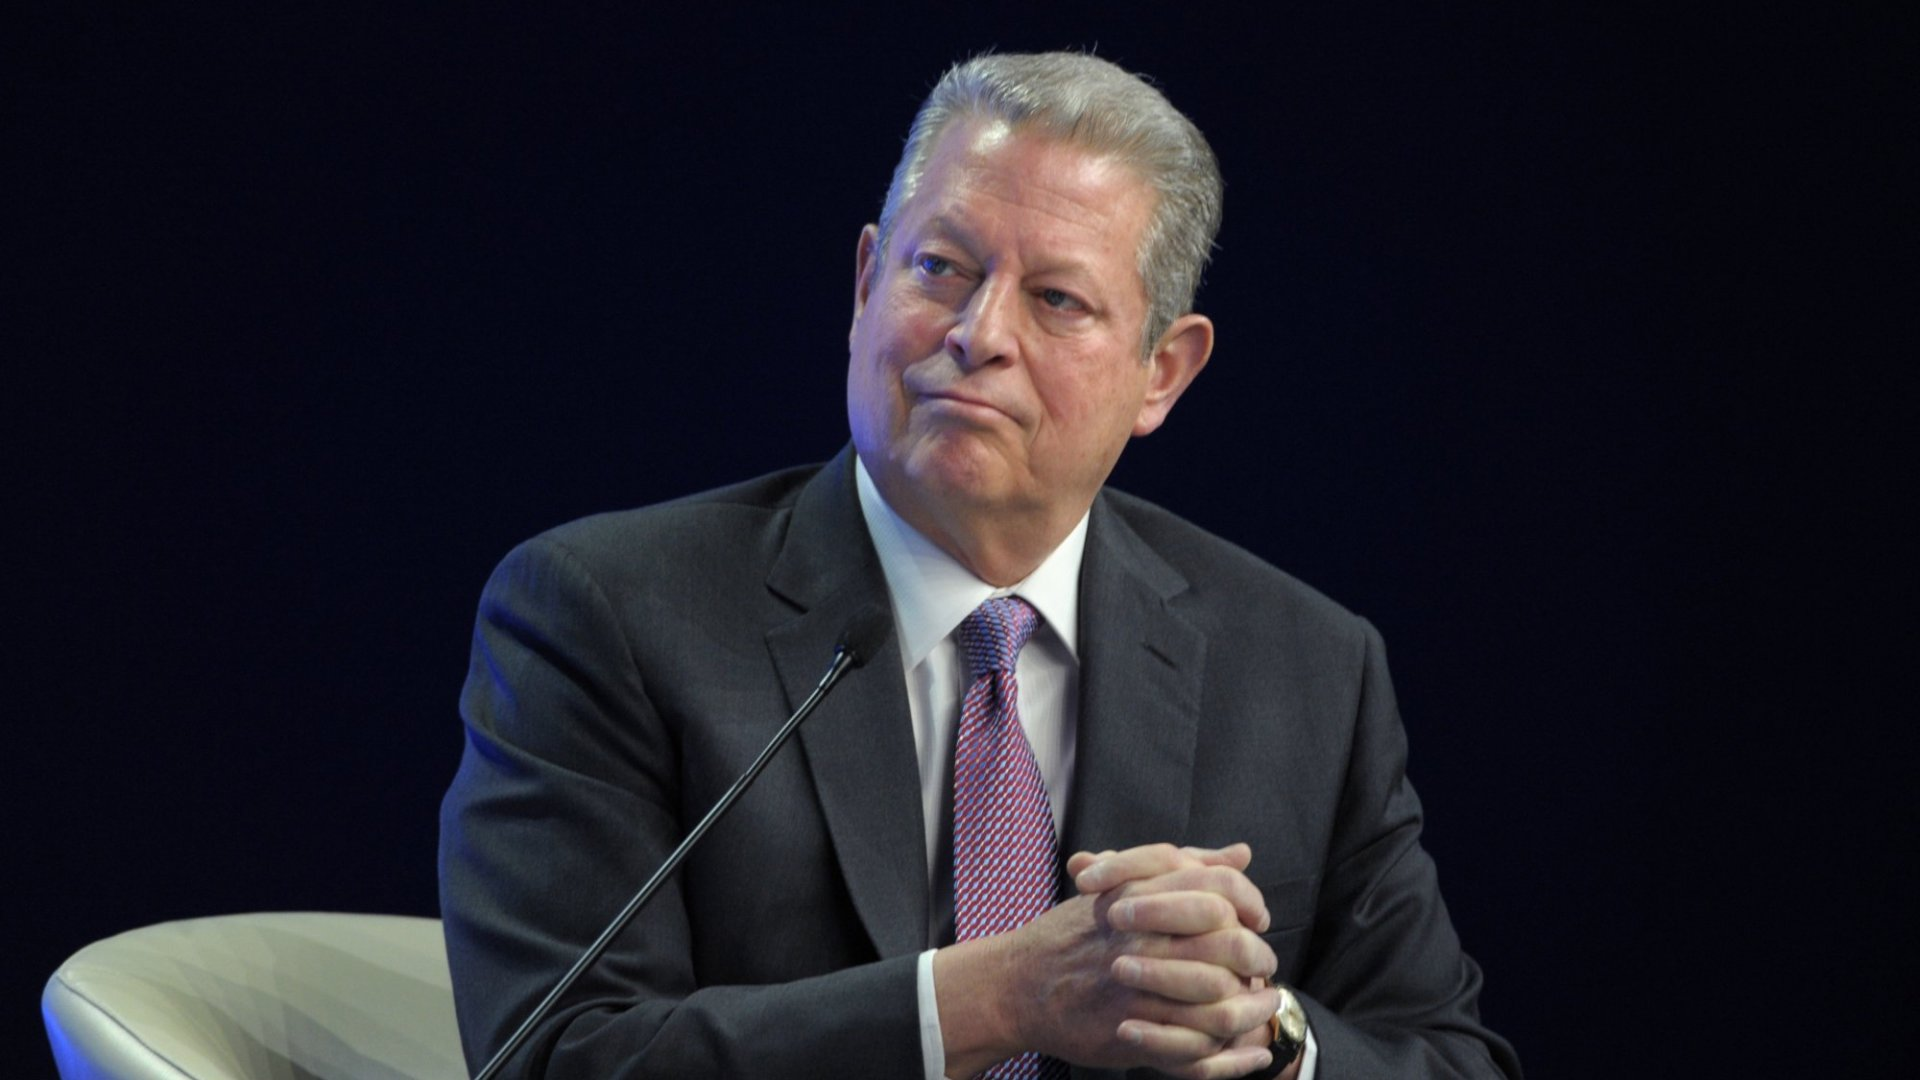 Al Gore Sees Technology Creating a Global Hive Mind